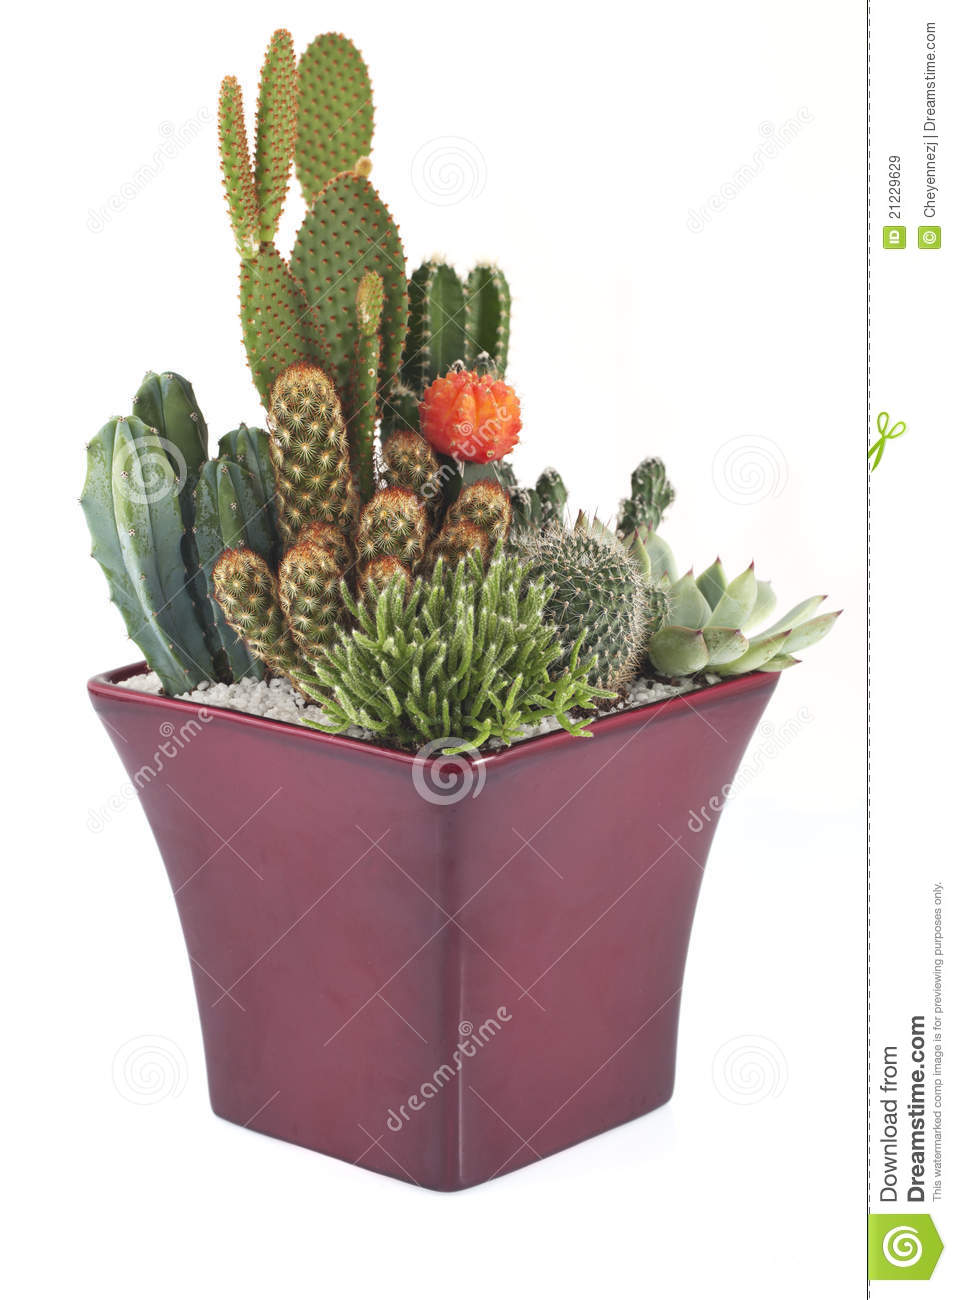 plantes en pot de cactus image stock image du earthenware 21229629. Black Bedroom Furniture Sets. Home Design Ideas